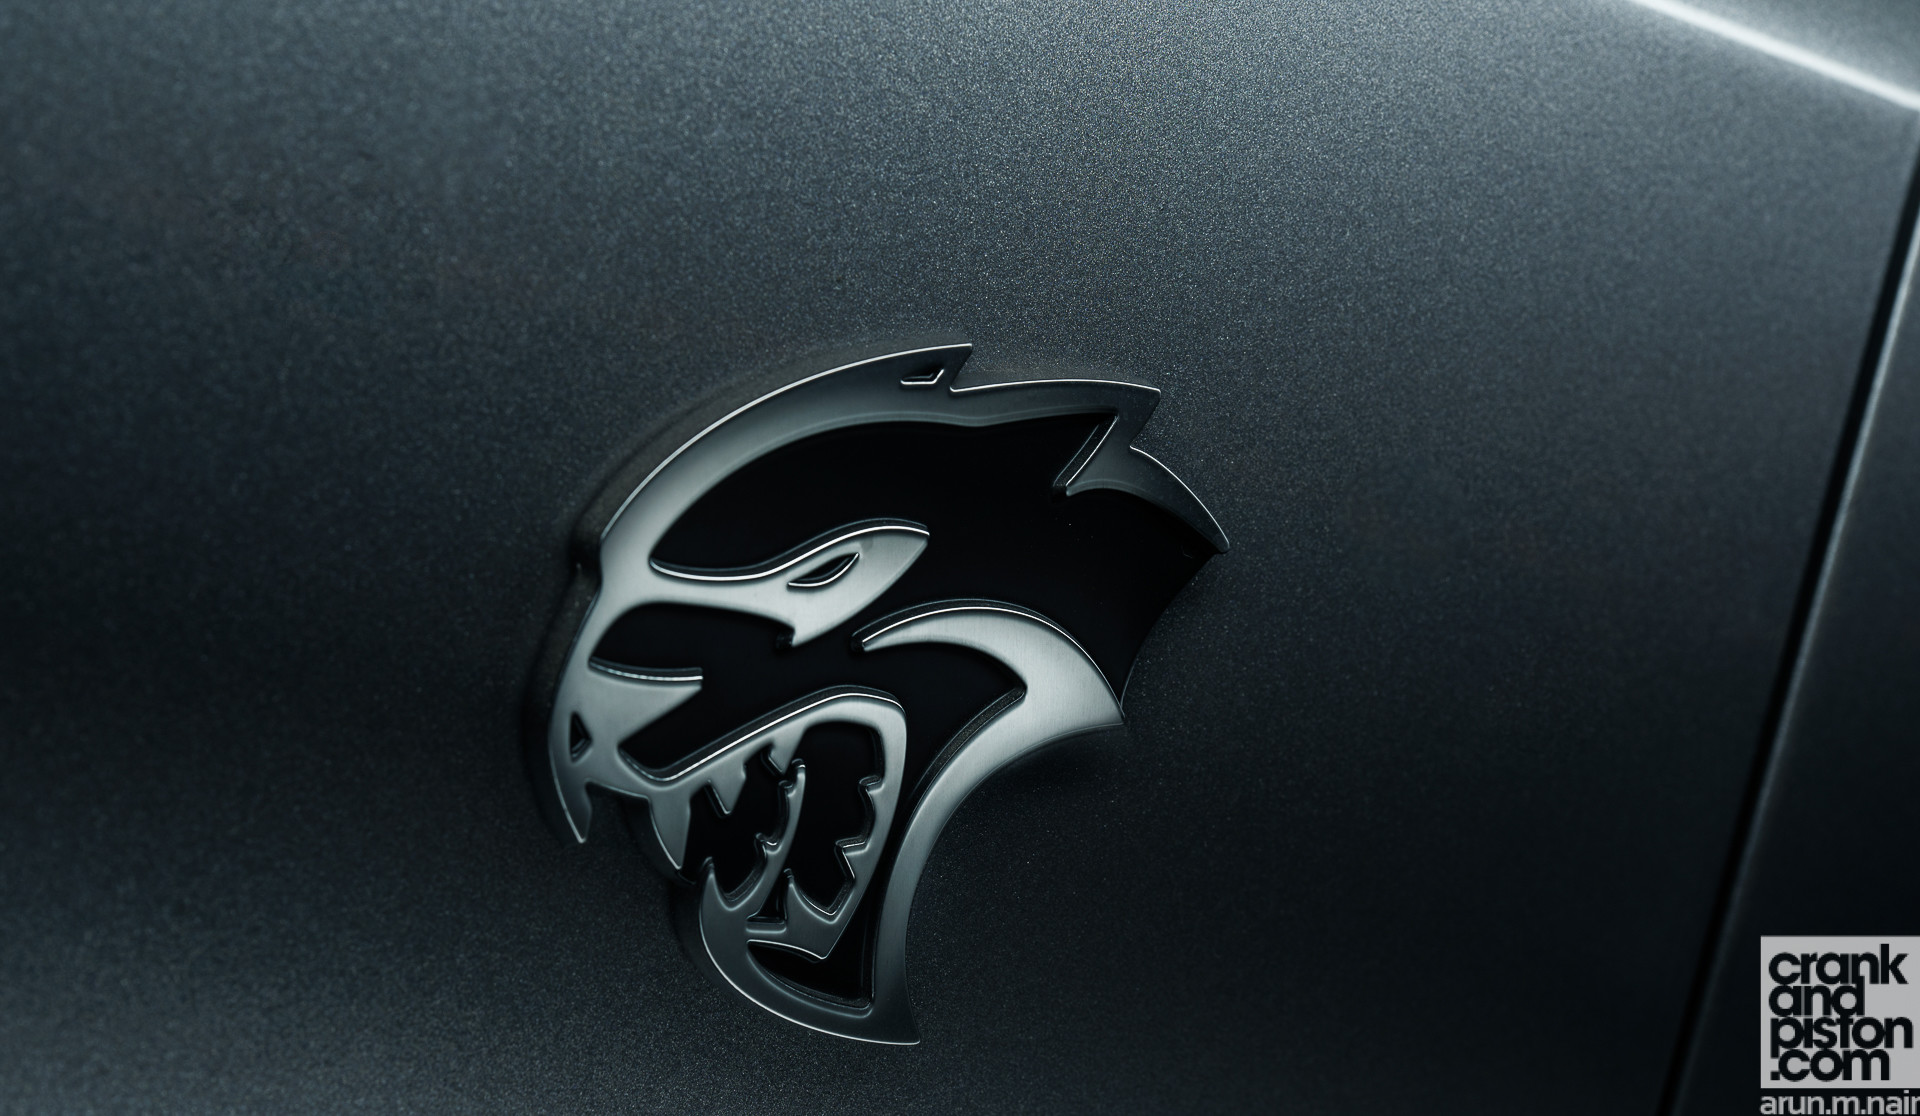 1920x1116 ... Dodge Challenger SRT Hellcat WALLPAPERS crankandpiston-4